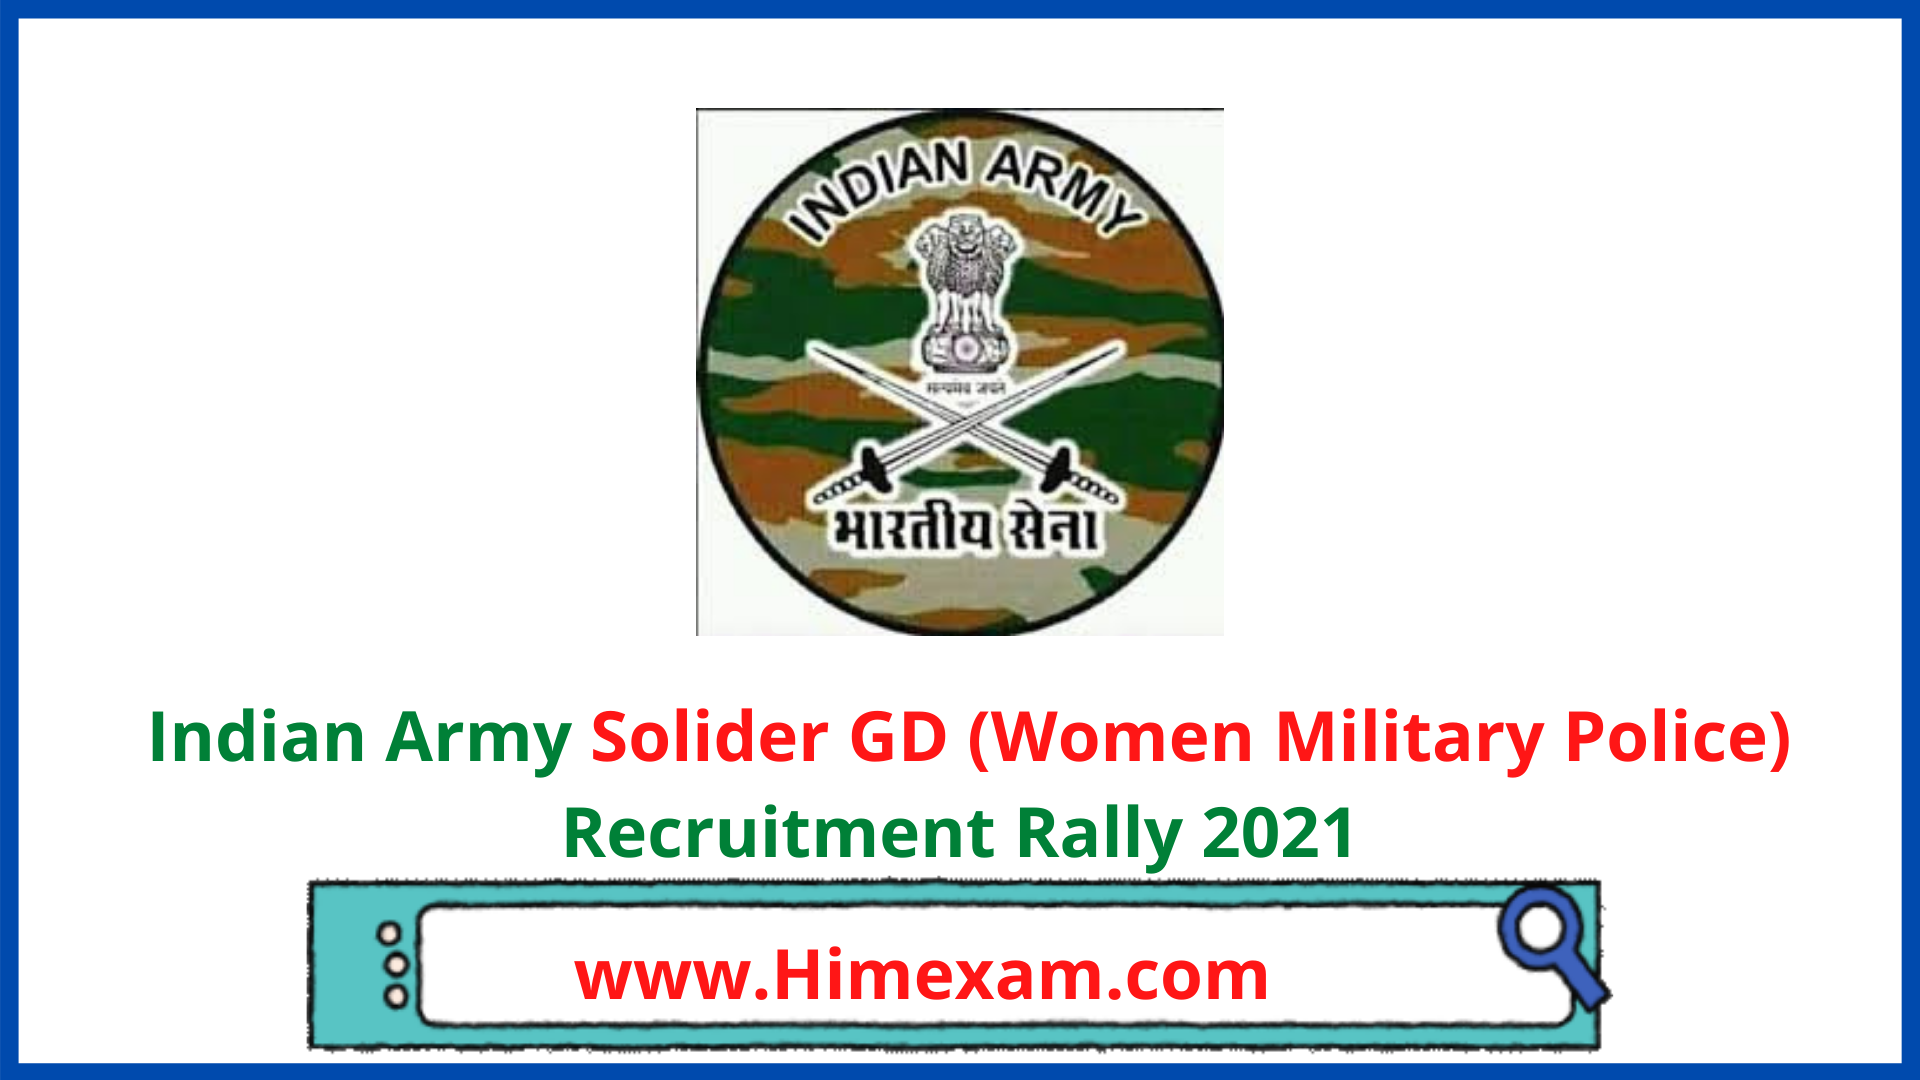 Indian Army Solider GD (Women Military Police) Recruitment Rally 2021